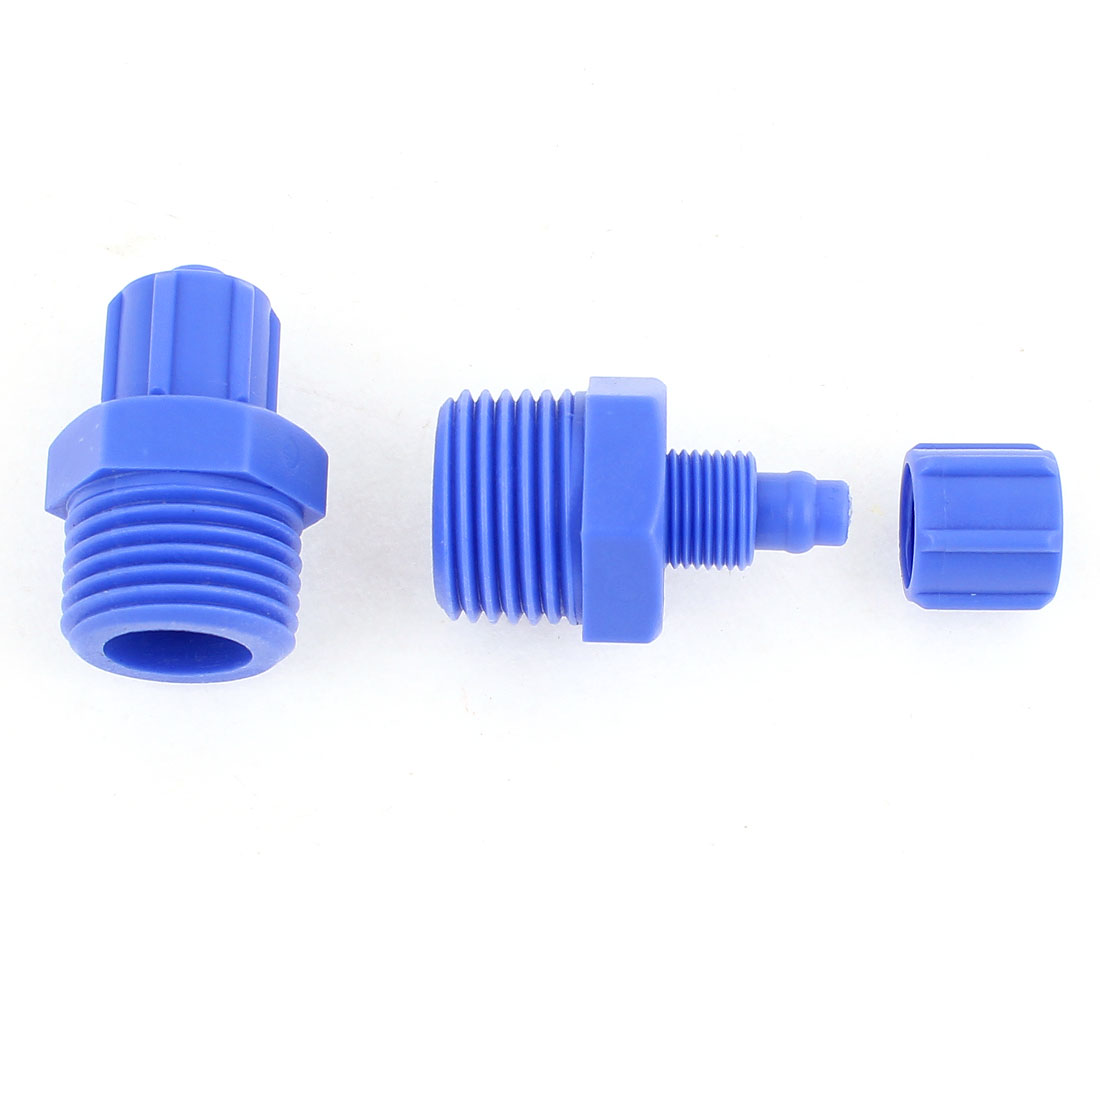 2 Pcs 1/2BSP Male Pneumatic Quick Fitting Hose Tube Pipe Connector 8mm OD